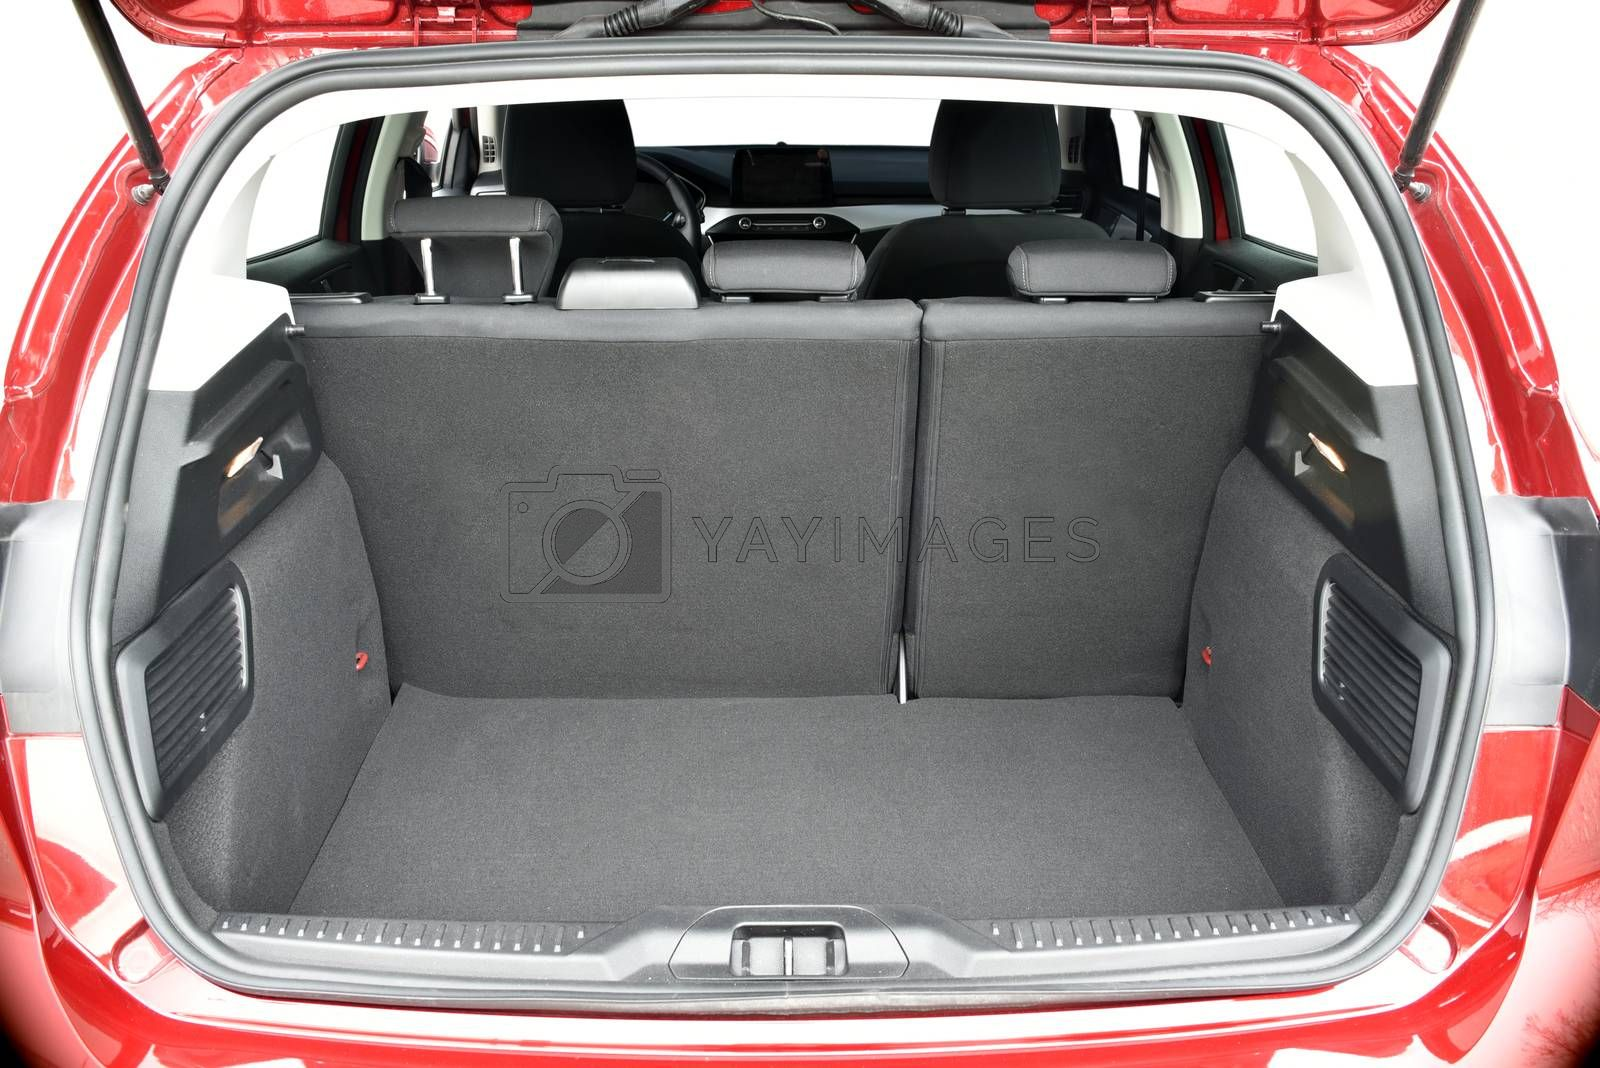 Royalty free image of Trunk of the car by aselsa